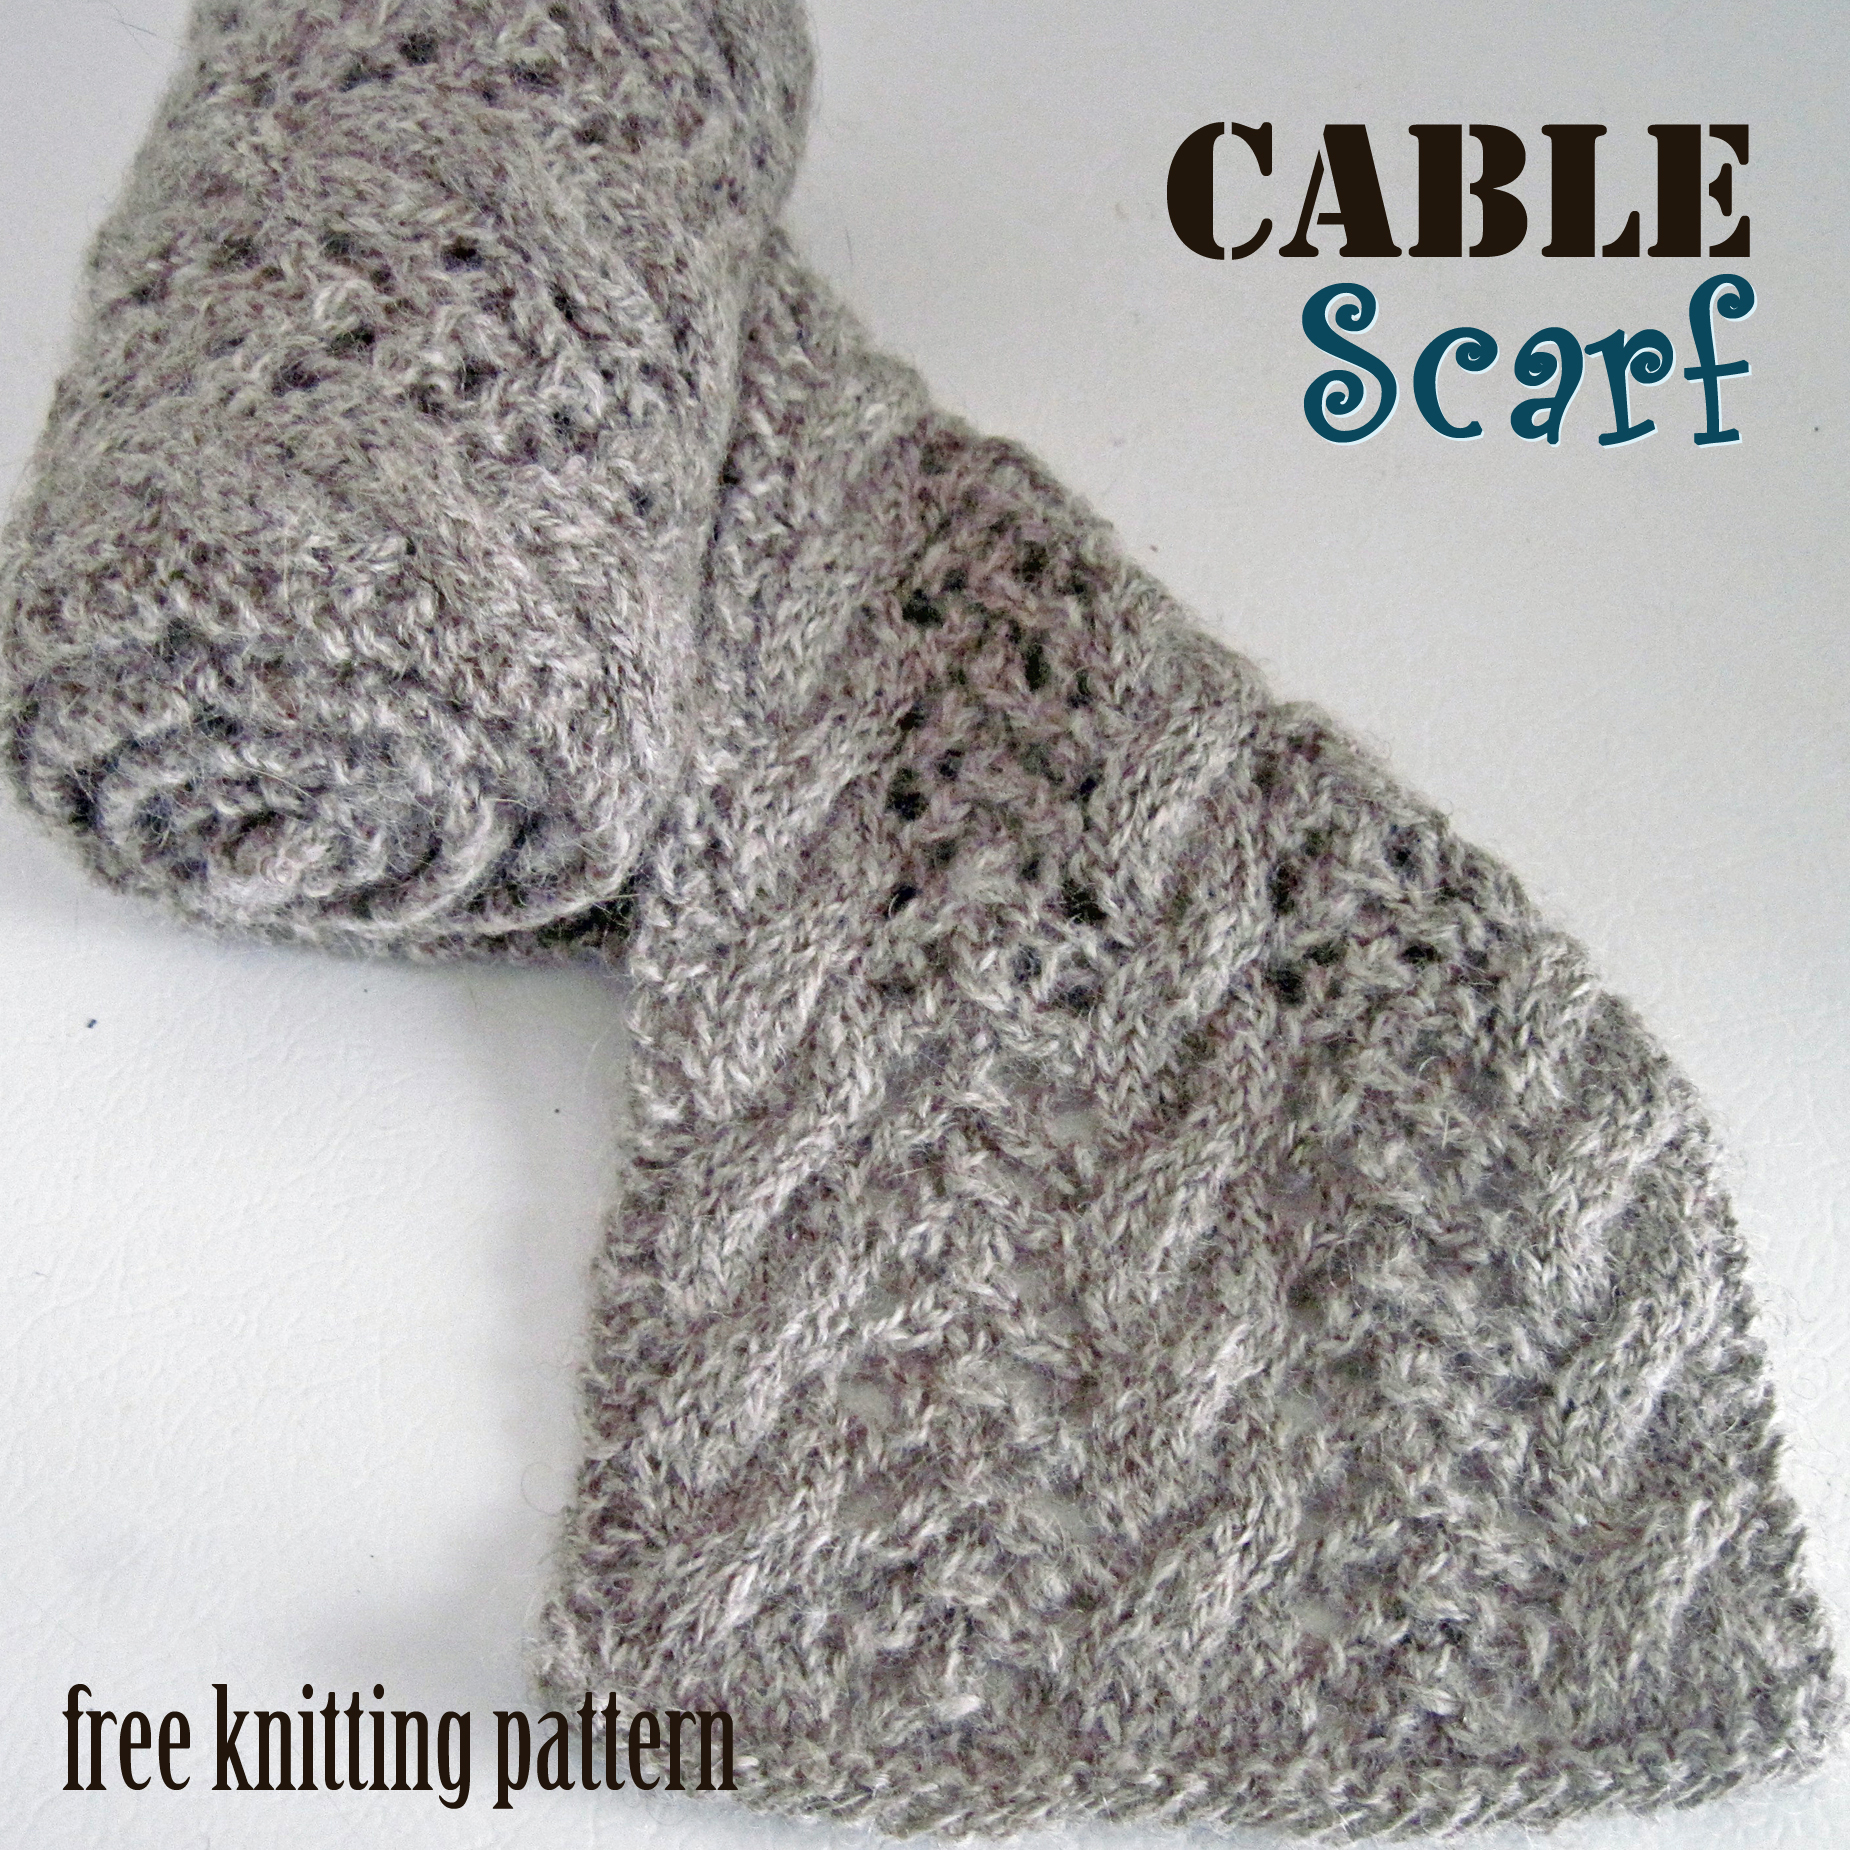 Cable Knitted Scarf Pattern Free Knitting Pattern Cable Scarf